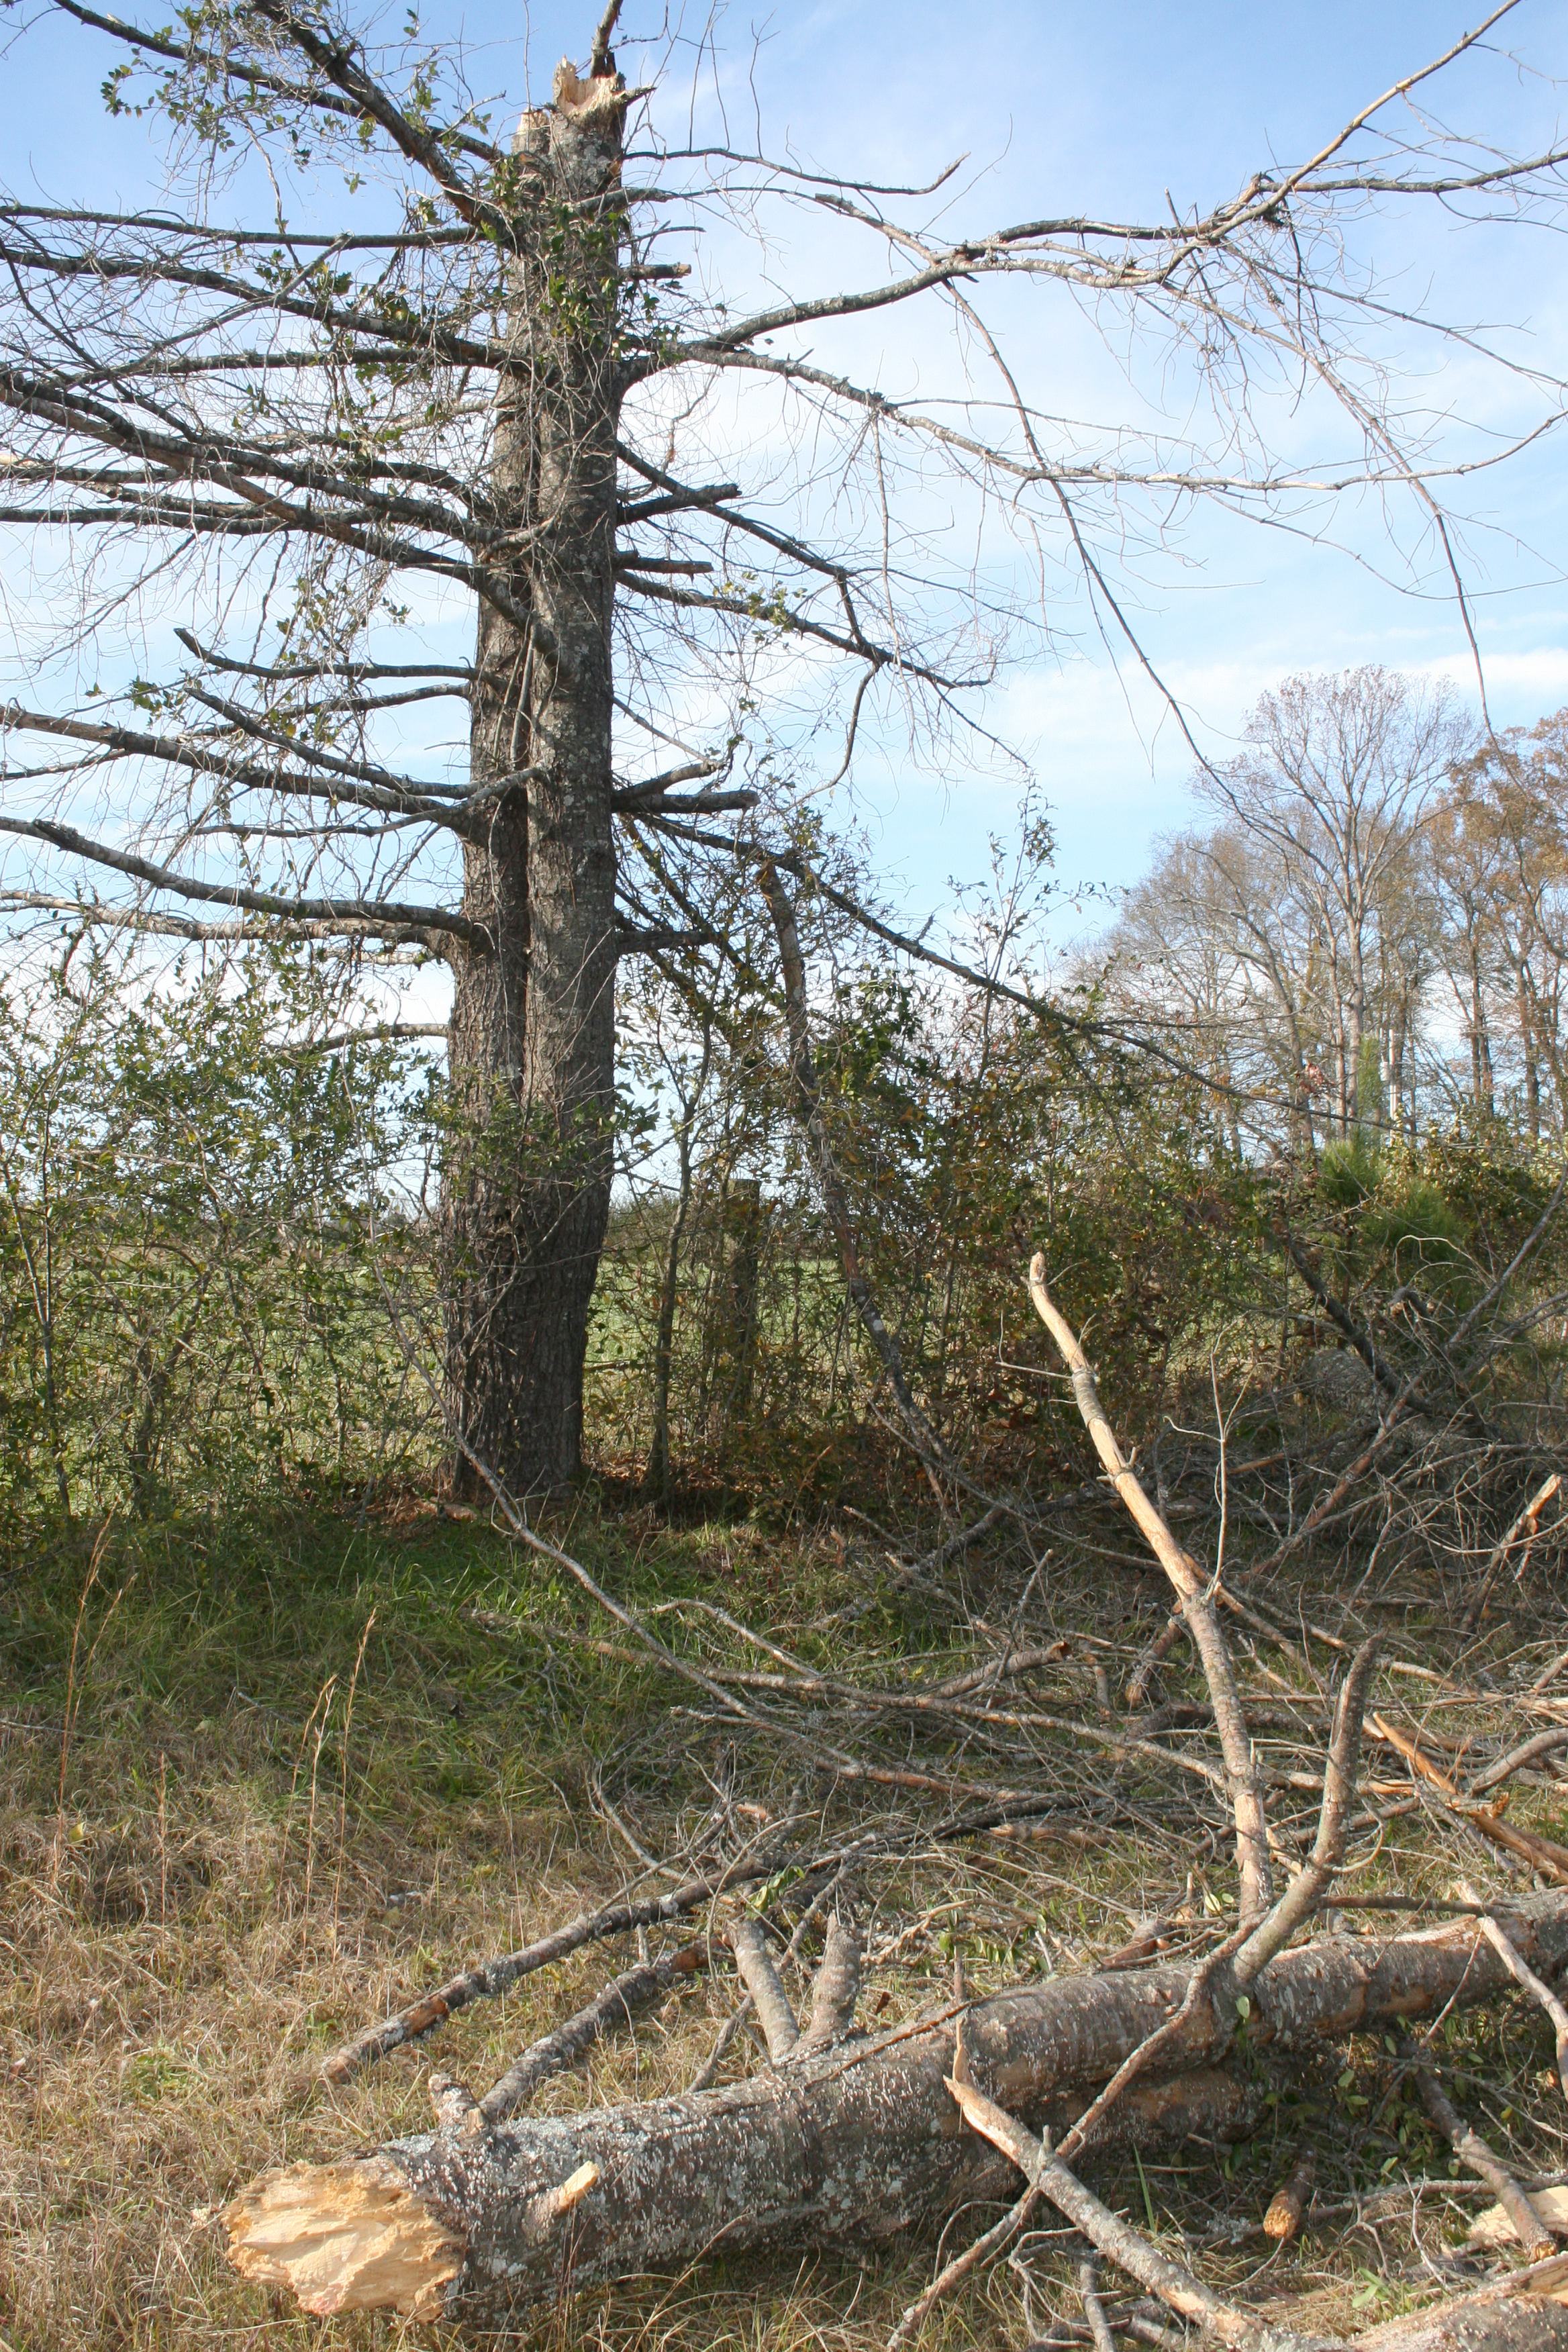 Trees were downed and limbs dislodged across central Georgia as a result of high winds Jan. 8. If trees must be replaced, take extra time to select strong, sturdy replacement varieties.